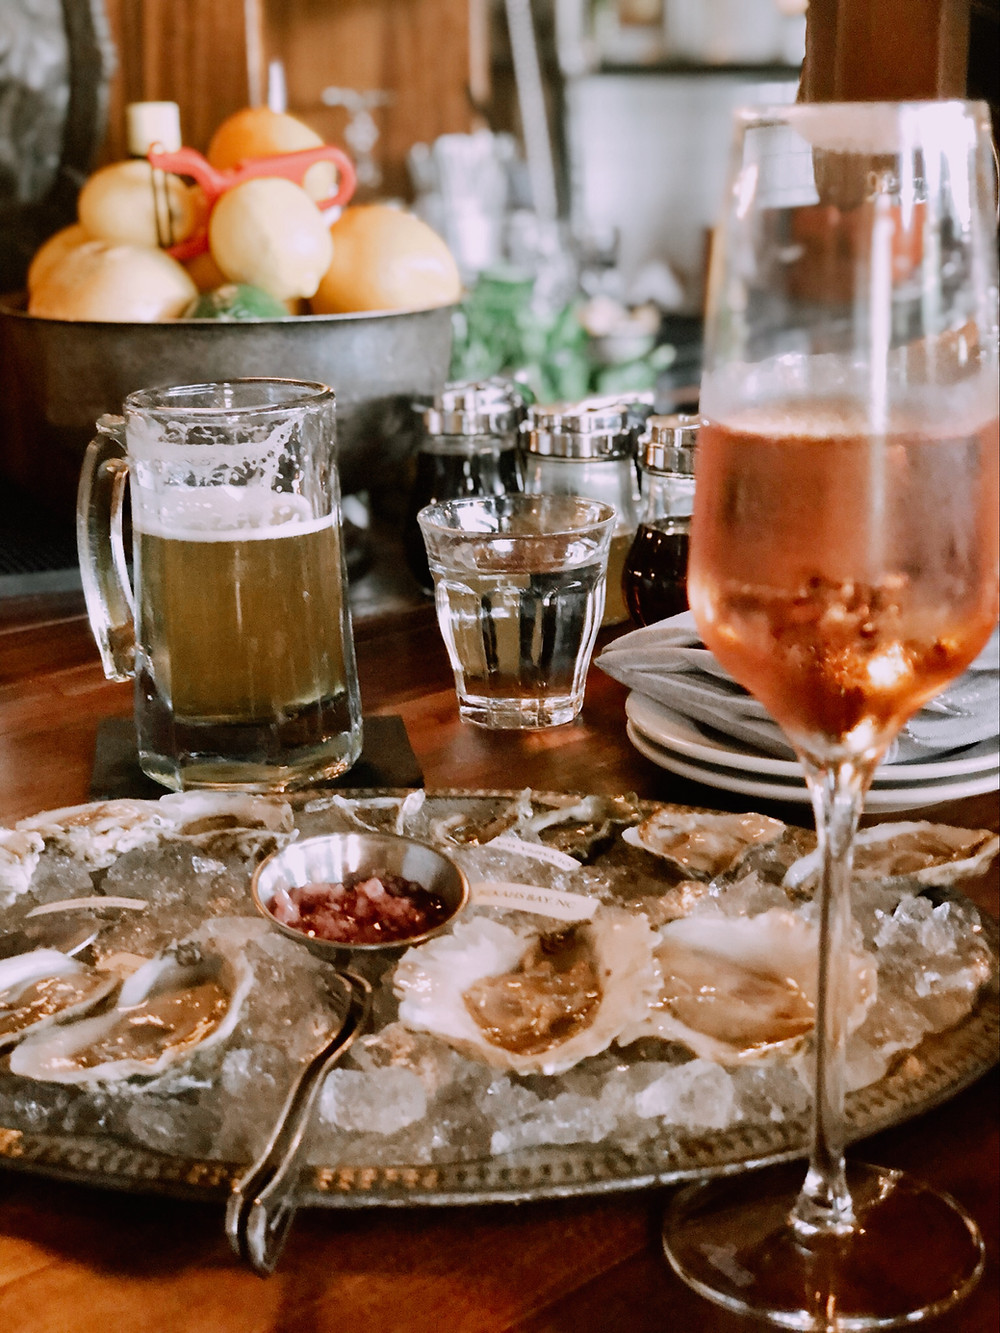 Bull Beggar Asheville, plate raw oysters, glass rosé wine, bowl of lemons